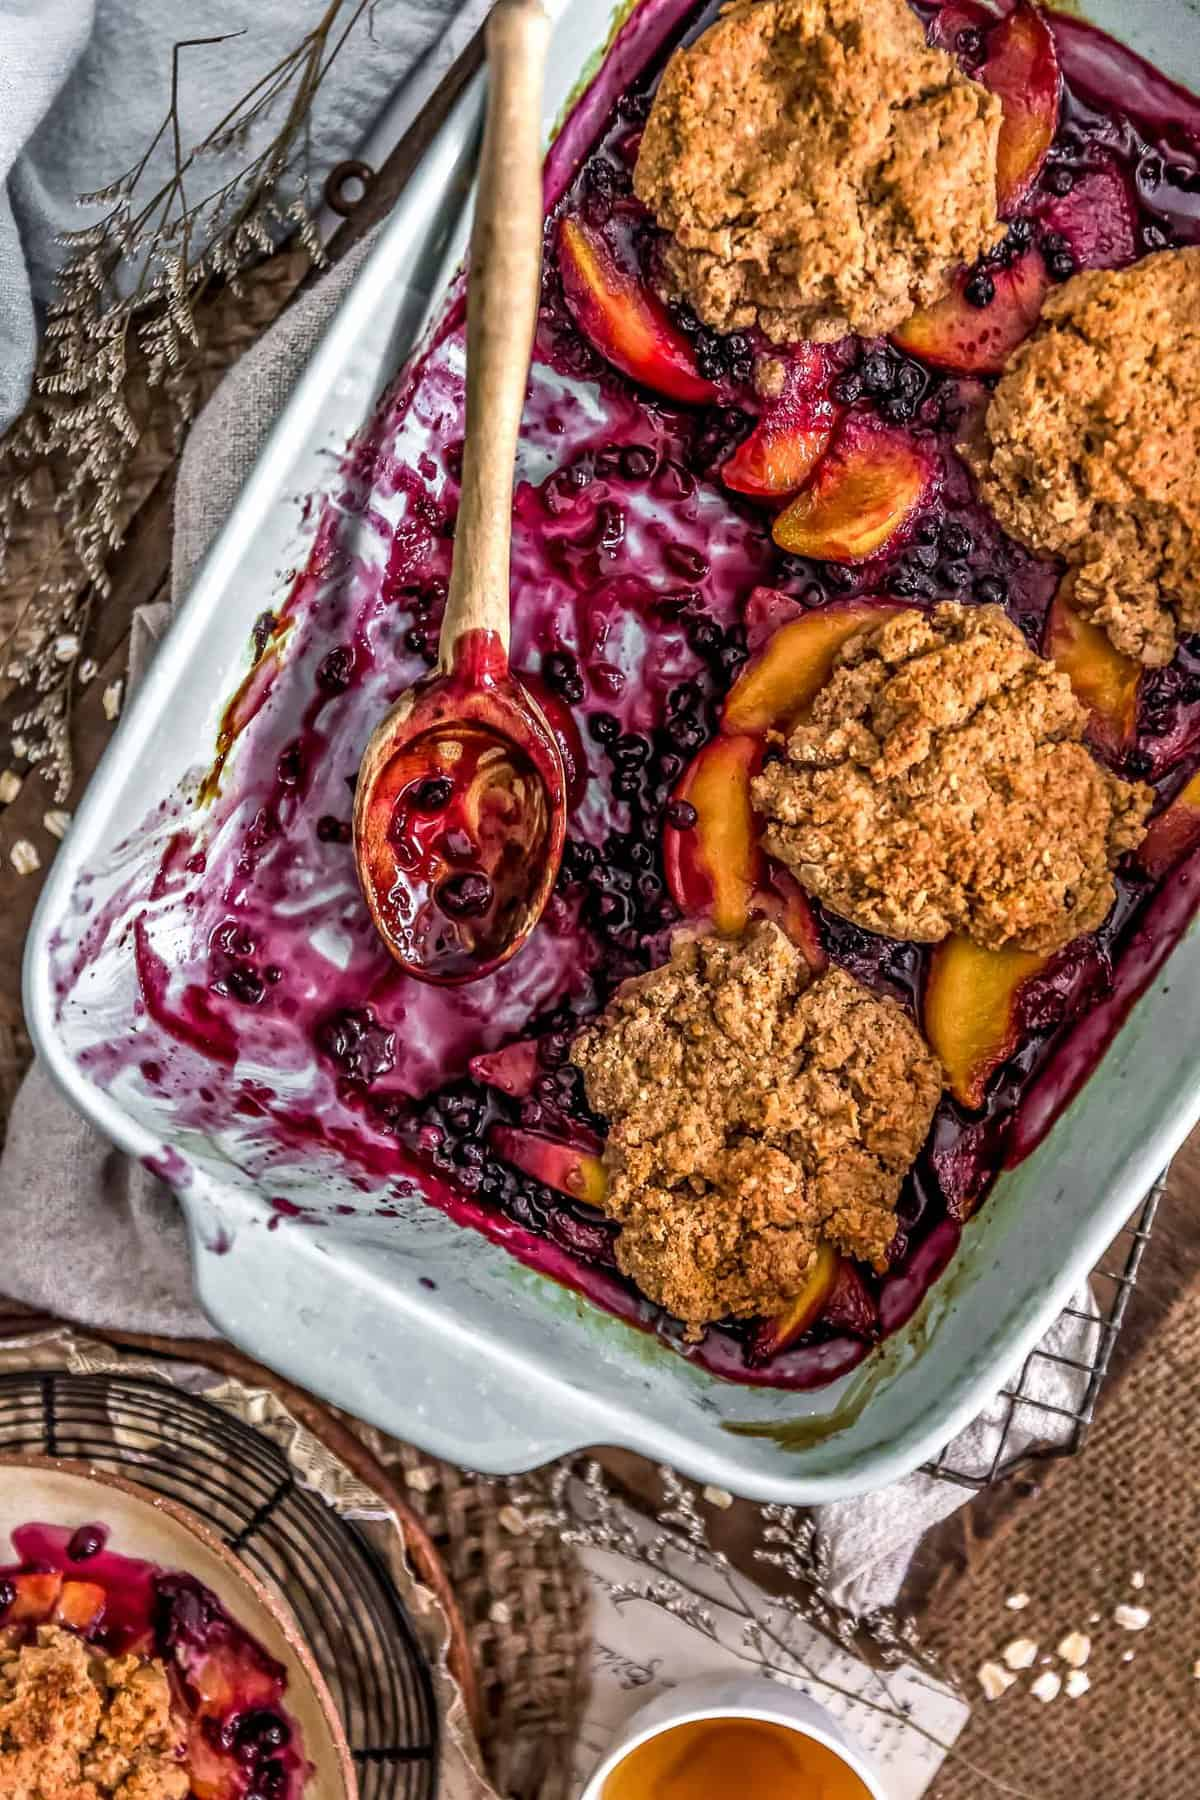 Peach Blueberry Biscuit Cobbler dish